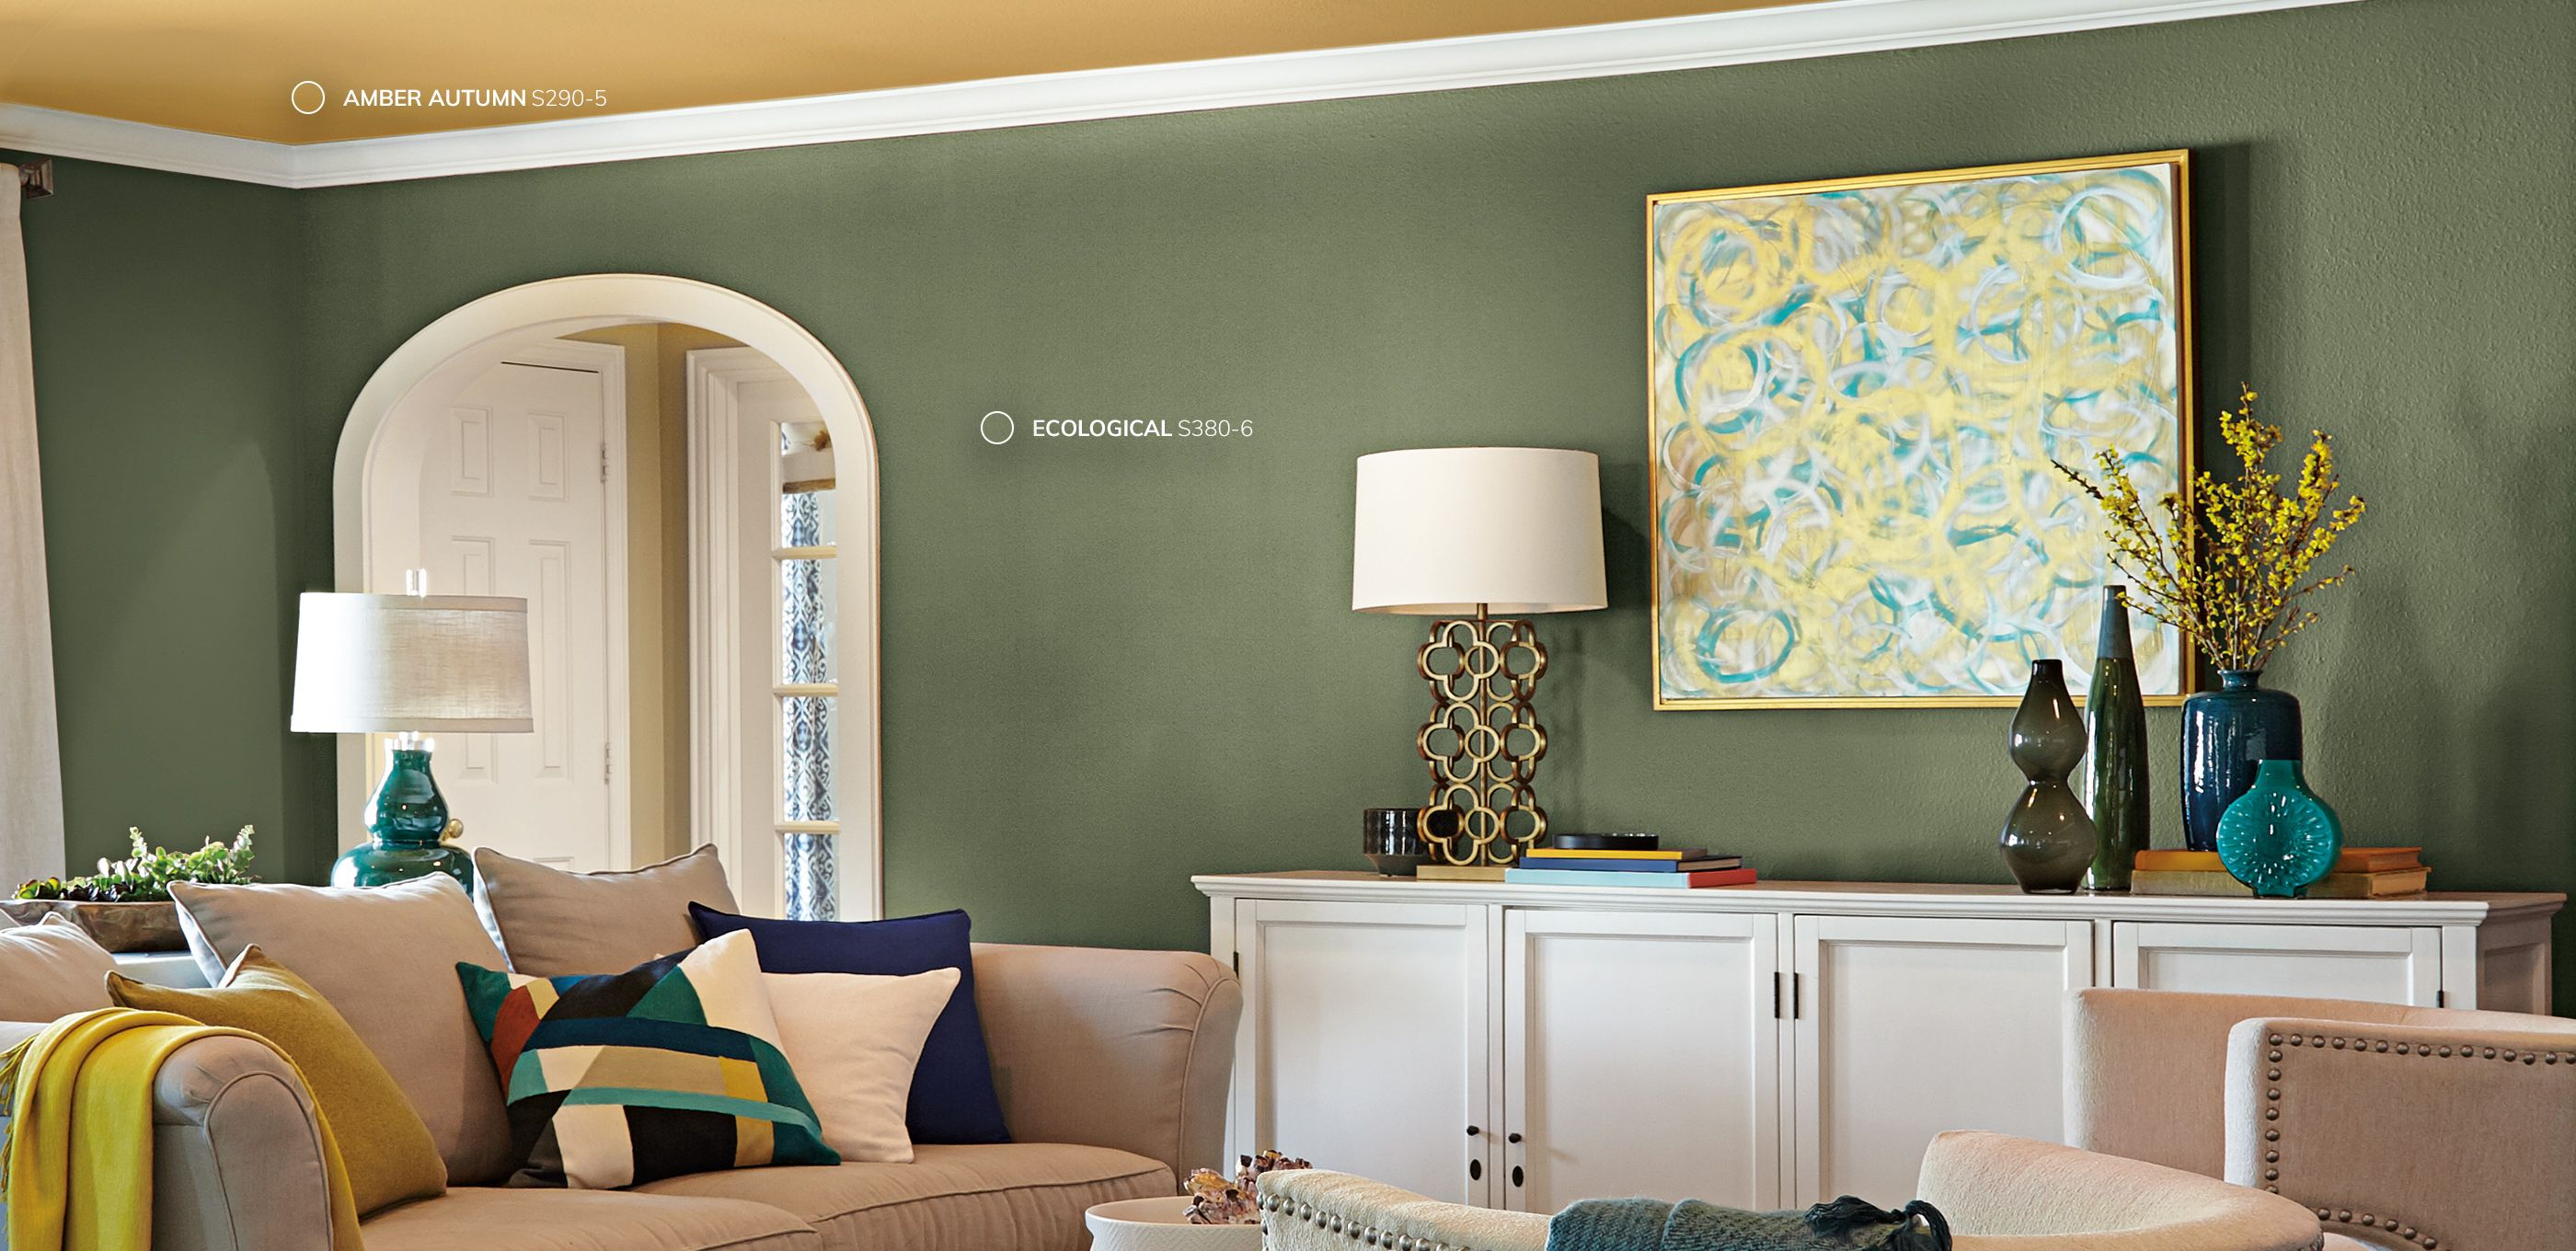 behr color trends 2019 behr color trends behr colors on behr paint colors interior id=34365